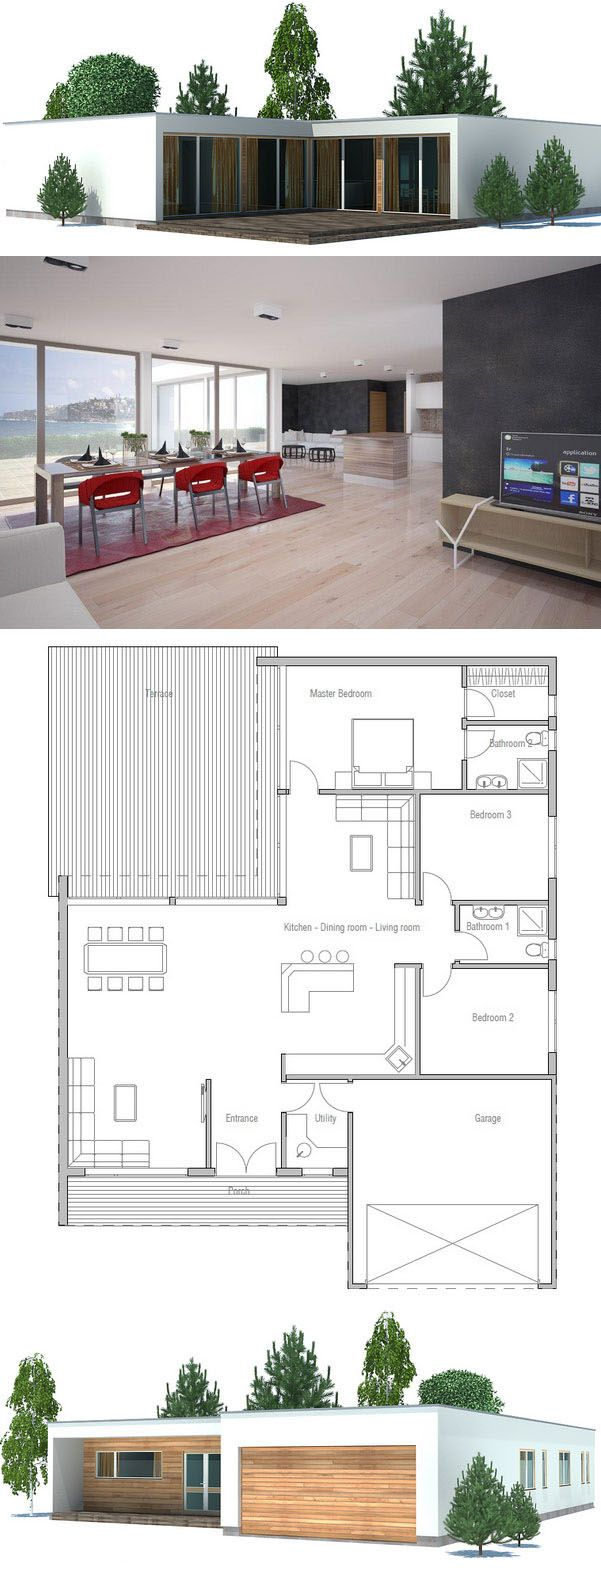 House plans | ConceptHousePlans  ~ Great pin! For Oahu architectural design visit http://ownerbuiltdesign.com